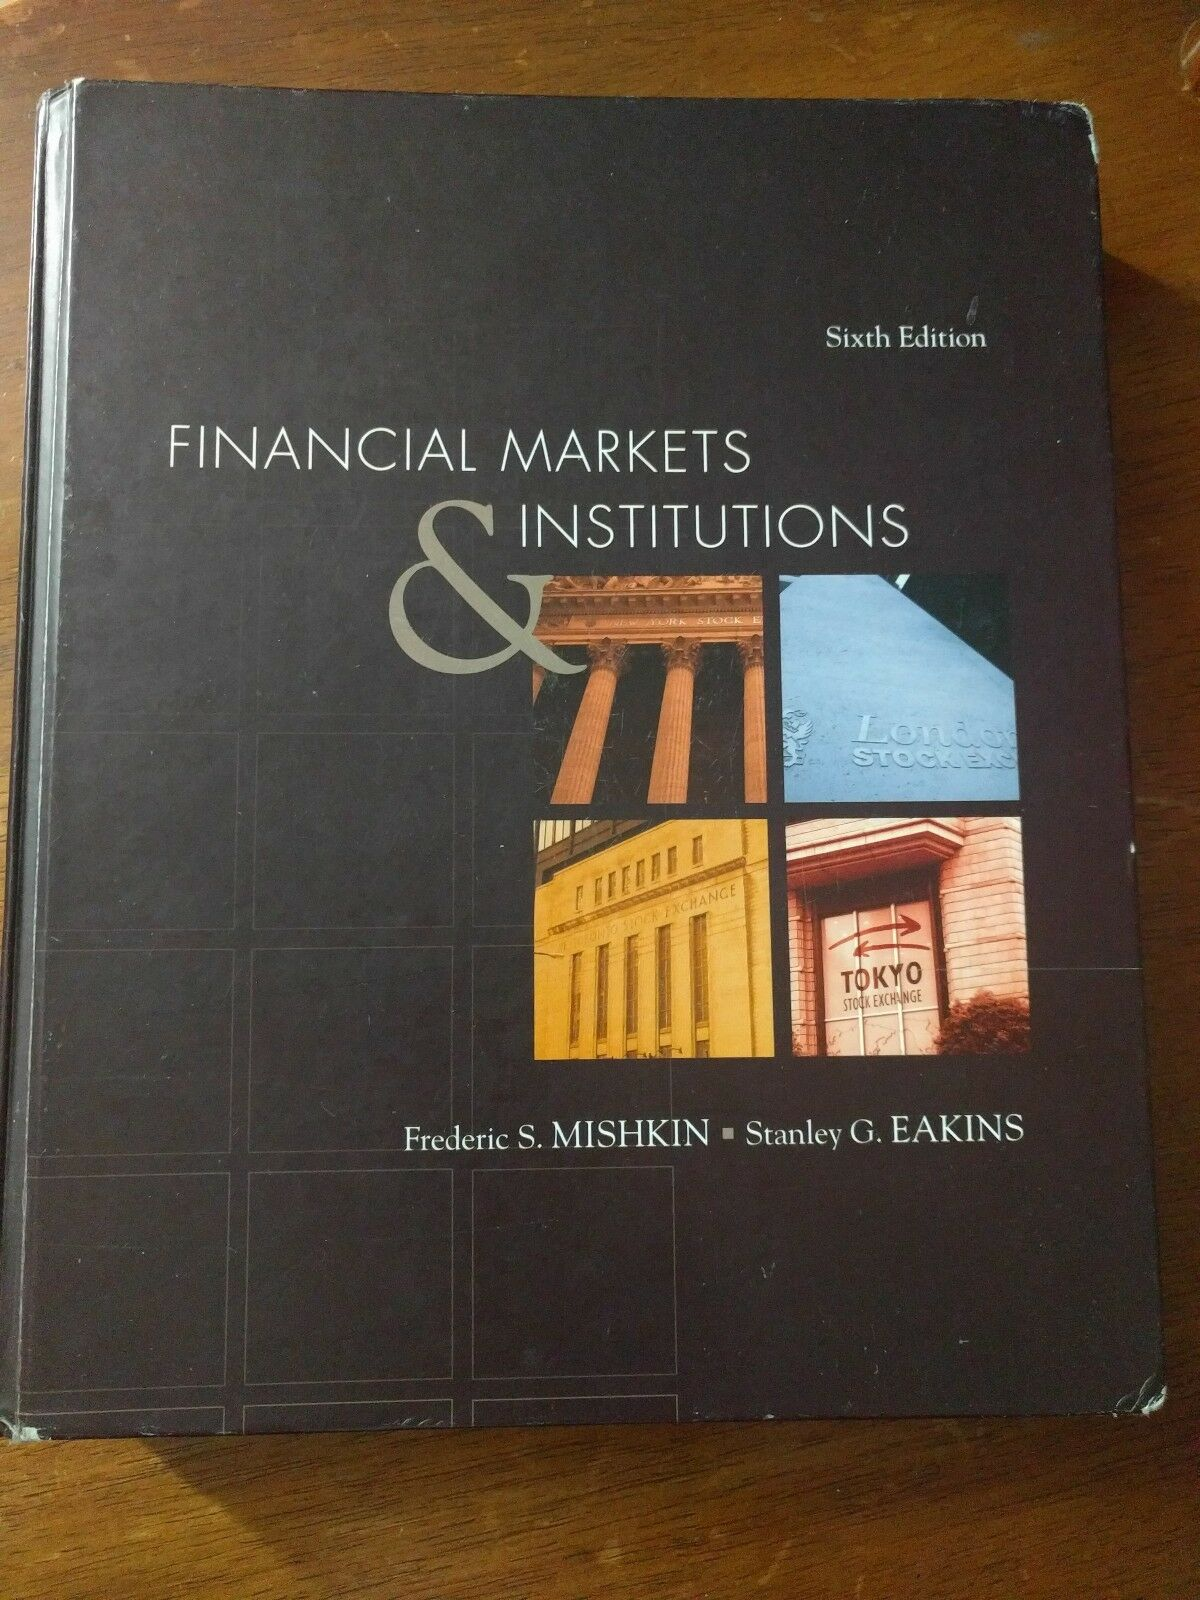 Financial Markets and Institutions by Frederic S. Mishkin, Stanley G. Eakins  and Mishkin (2008, Hardcover) | eBay